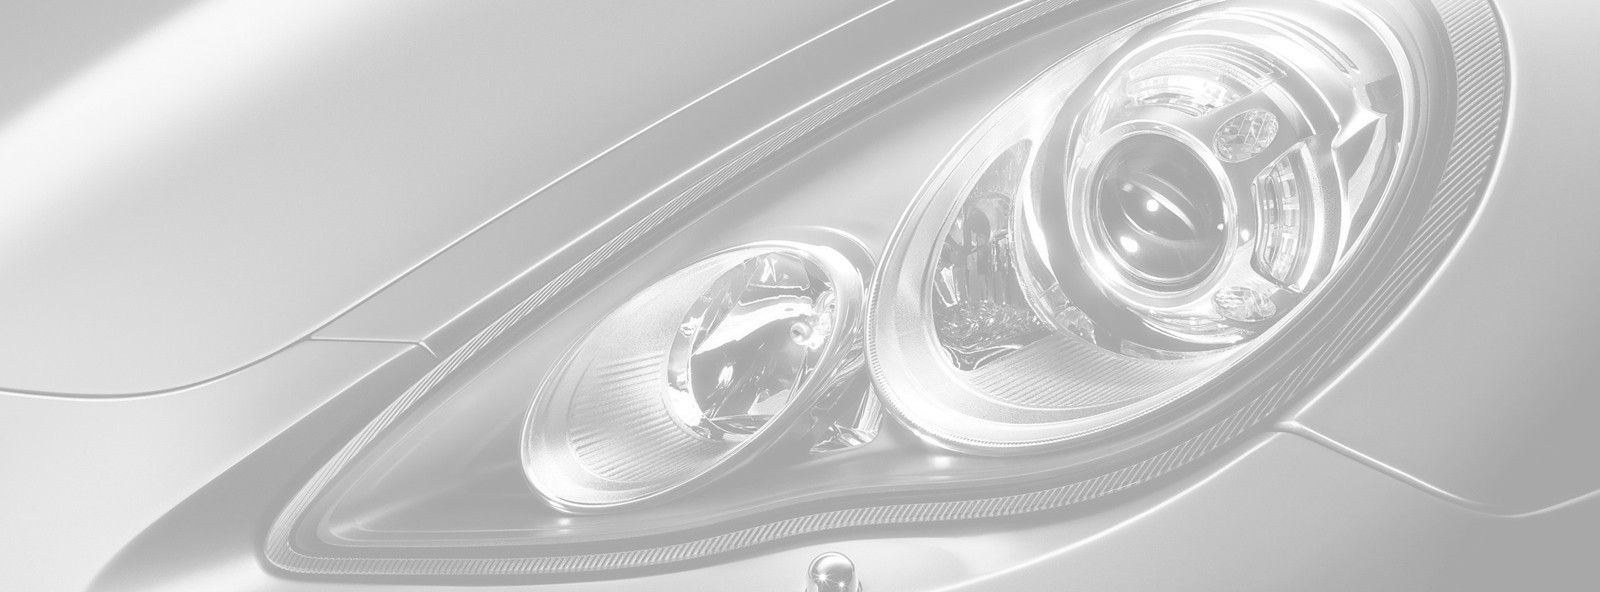 Banner Image of Porsche Headlight